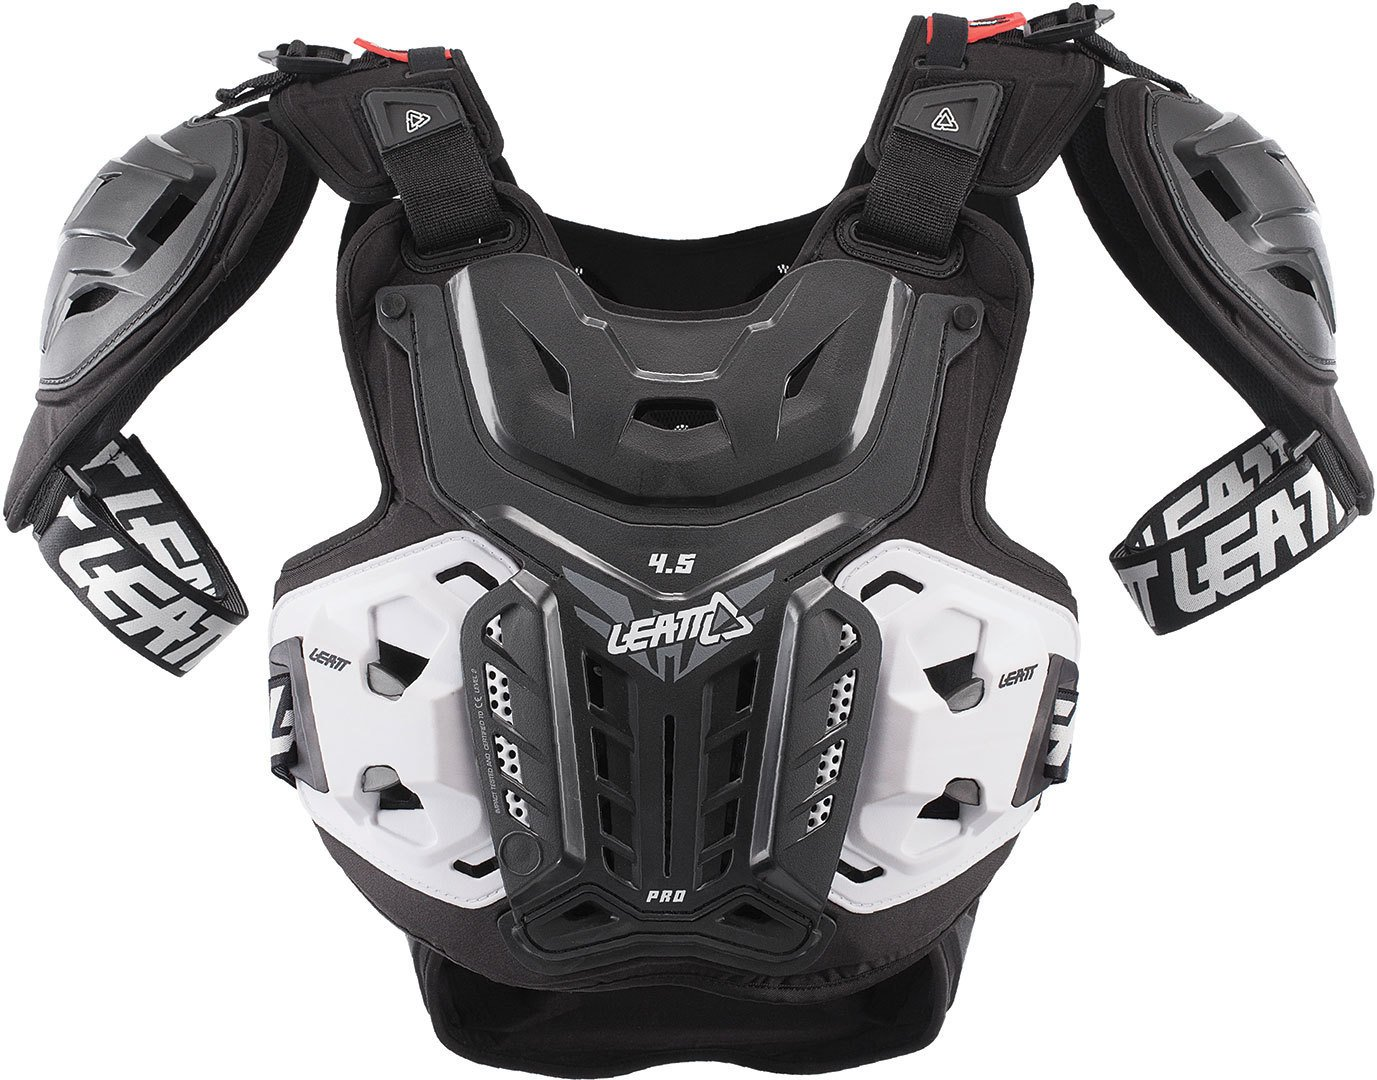 Leatt 4.5 Pro Chest Protector-Adult 5017120100